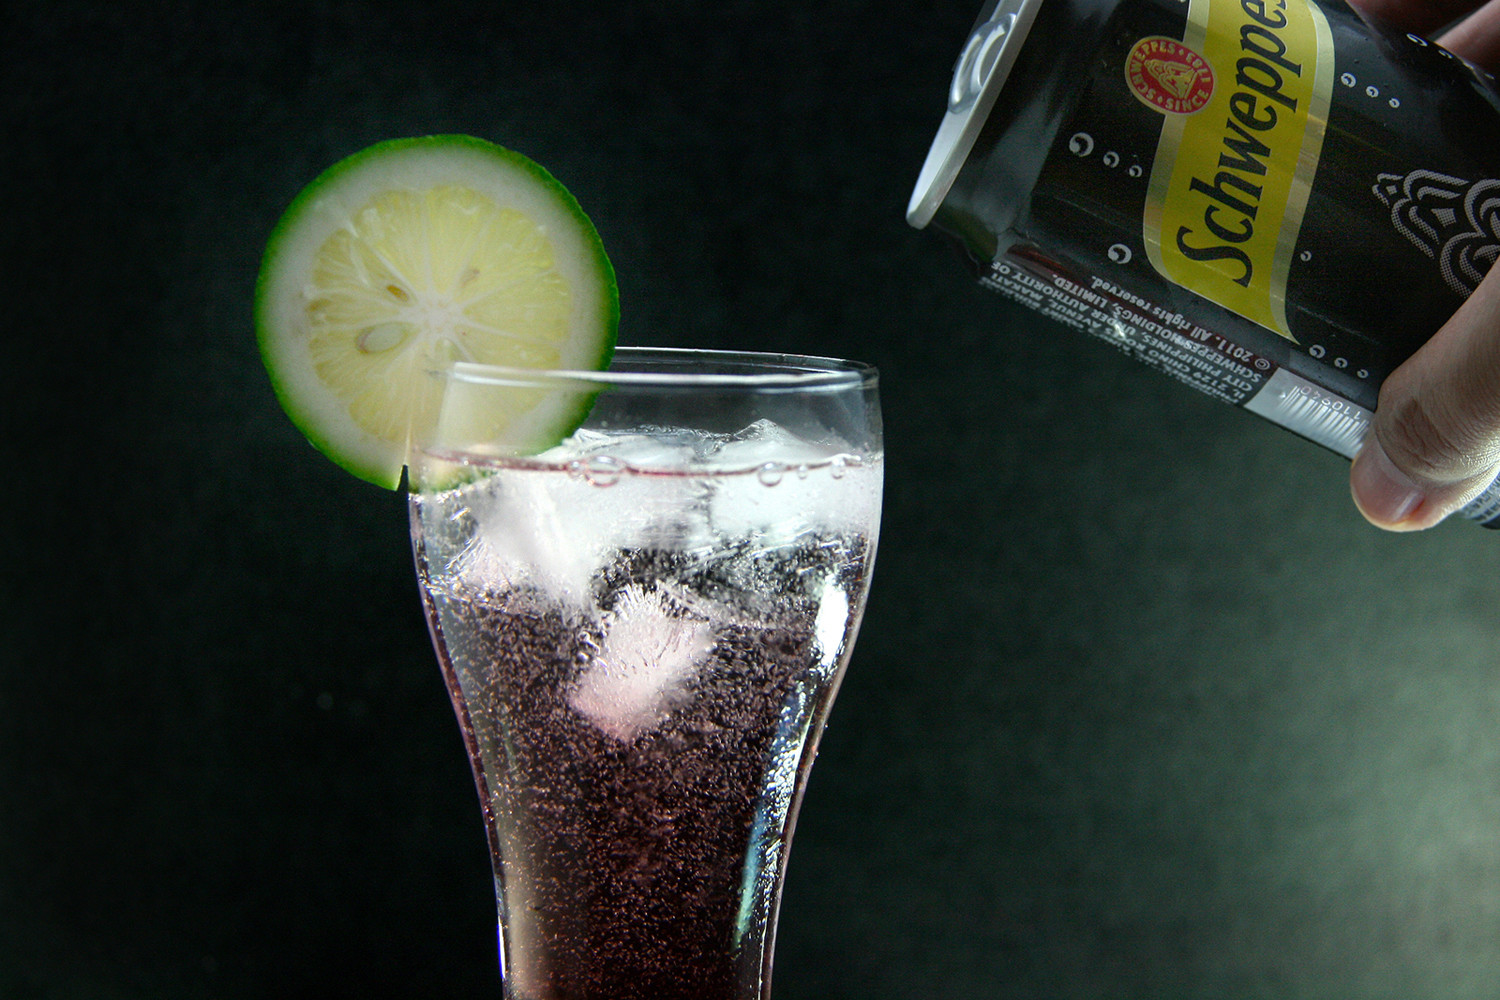 Vodka Low Calorie Drinks  3 Ways to Make Low Calorie Vodka Drinks wikiHow